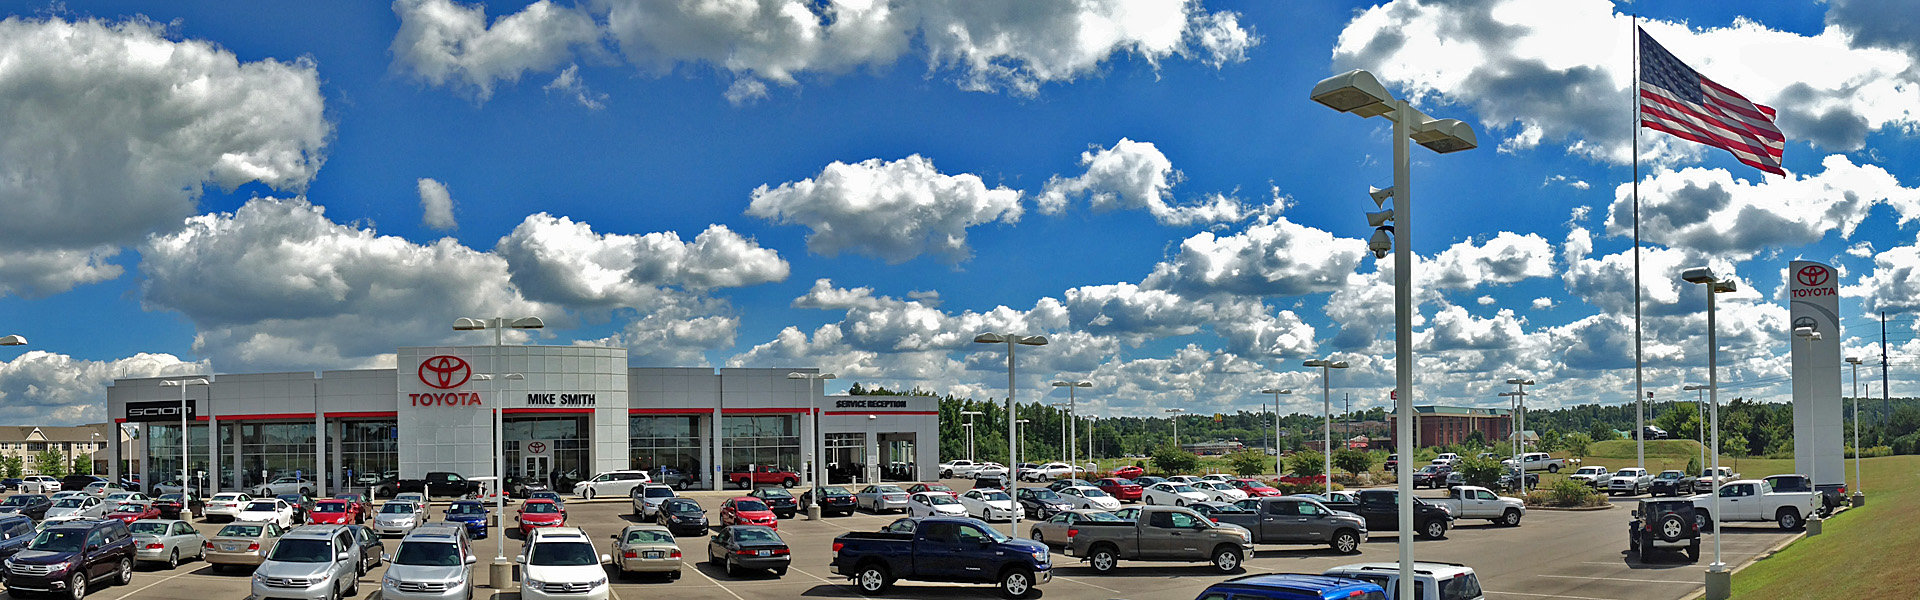 Mike Smith Toyota Dealership